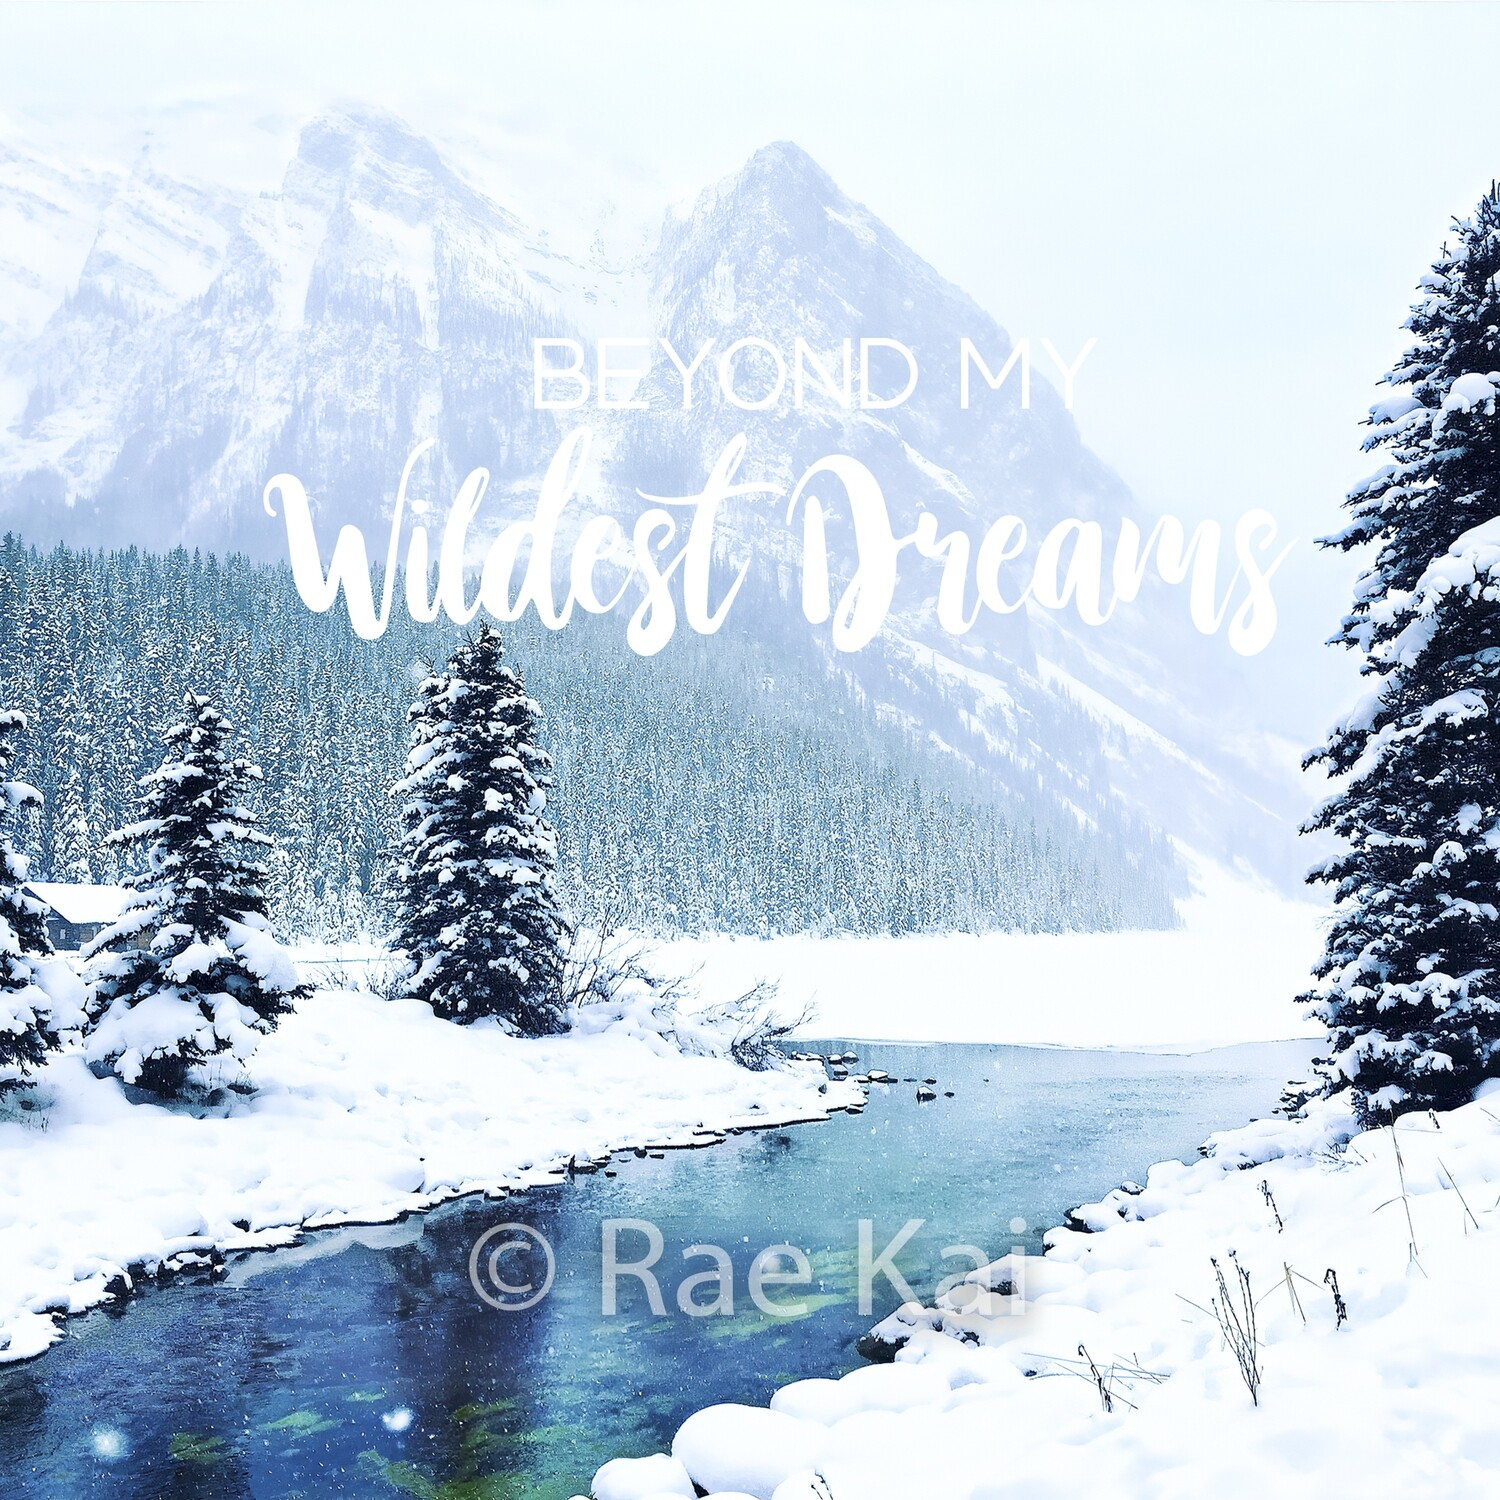 Beyond My Wildest Dreams-Inspirational Square Photo